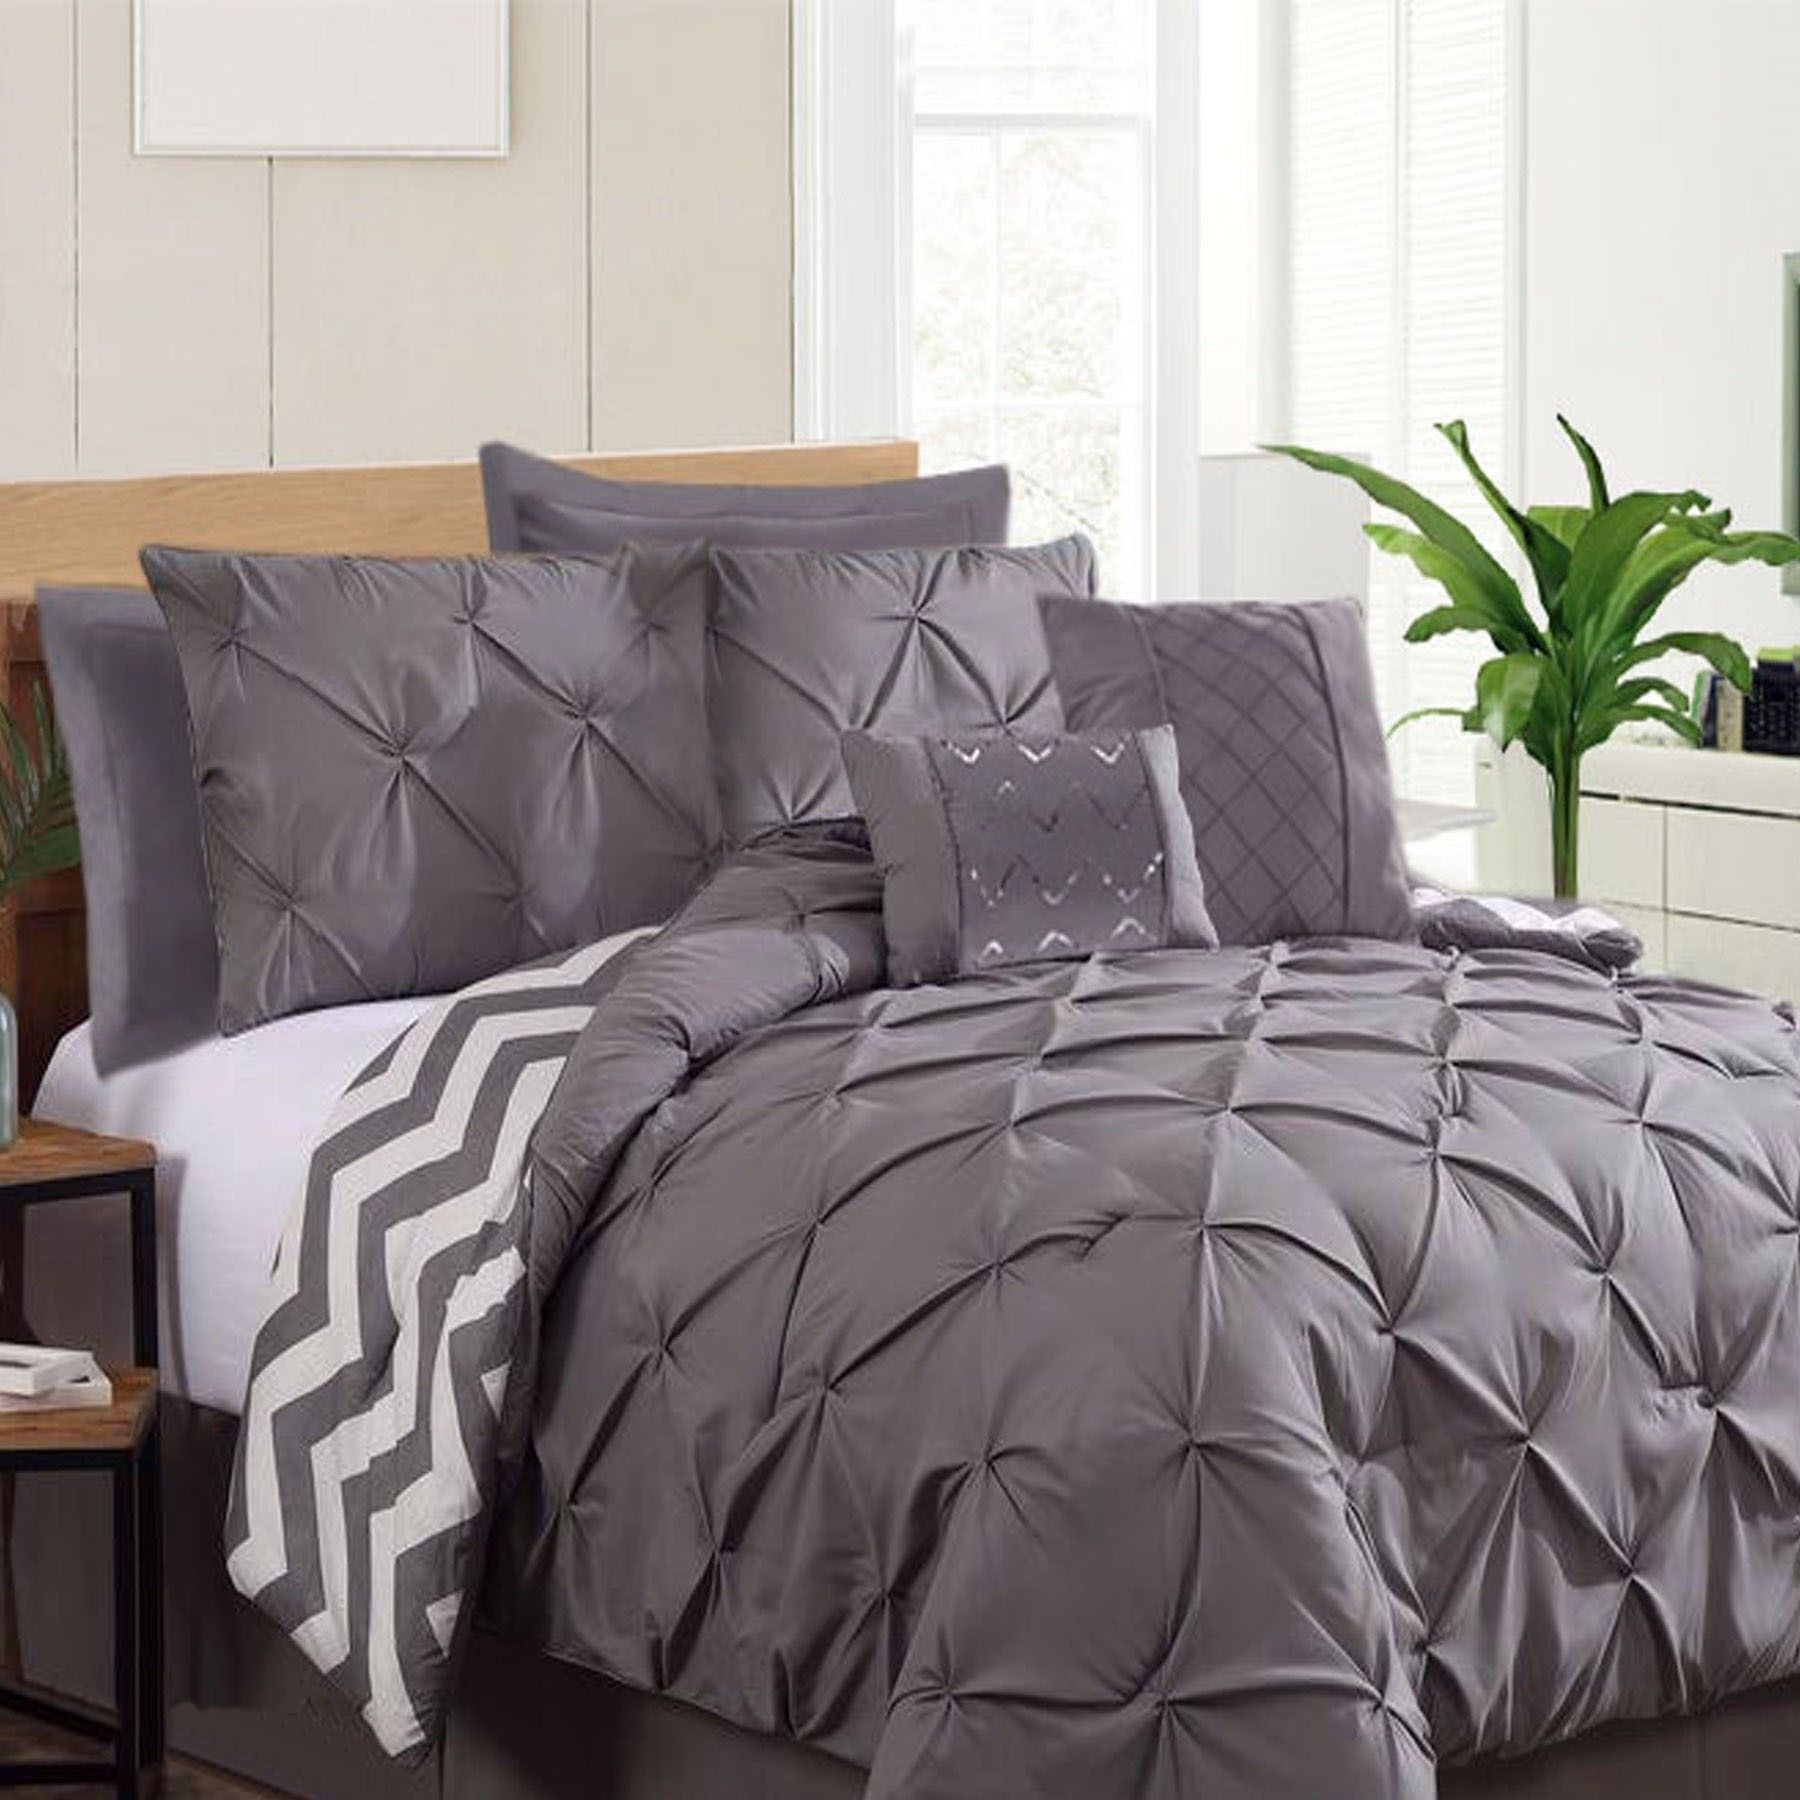 7 Piece Pinch Pleat Comforter Set Charcoal by Ramesses